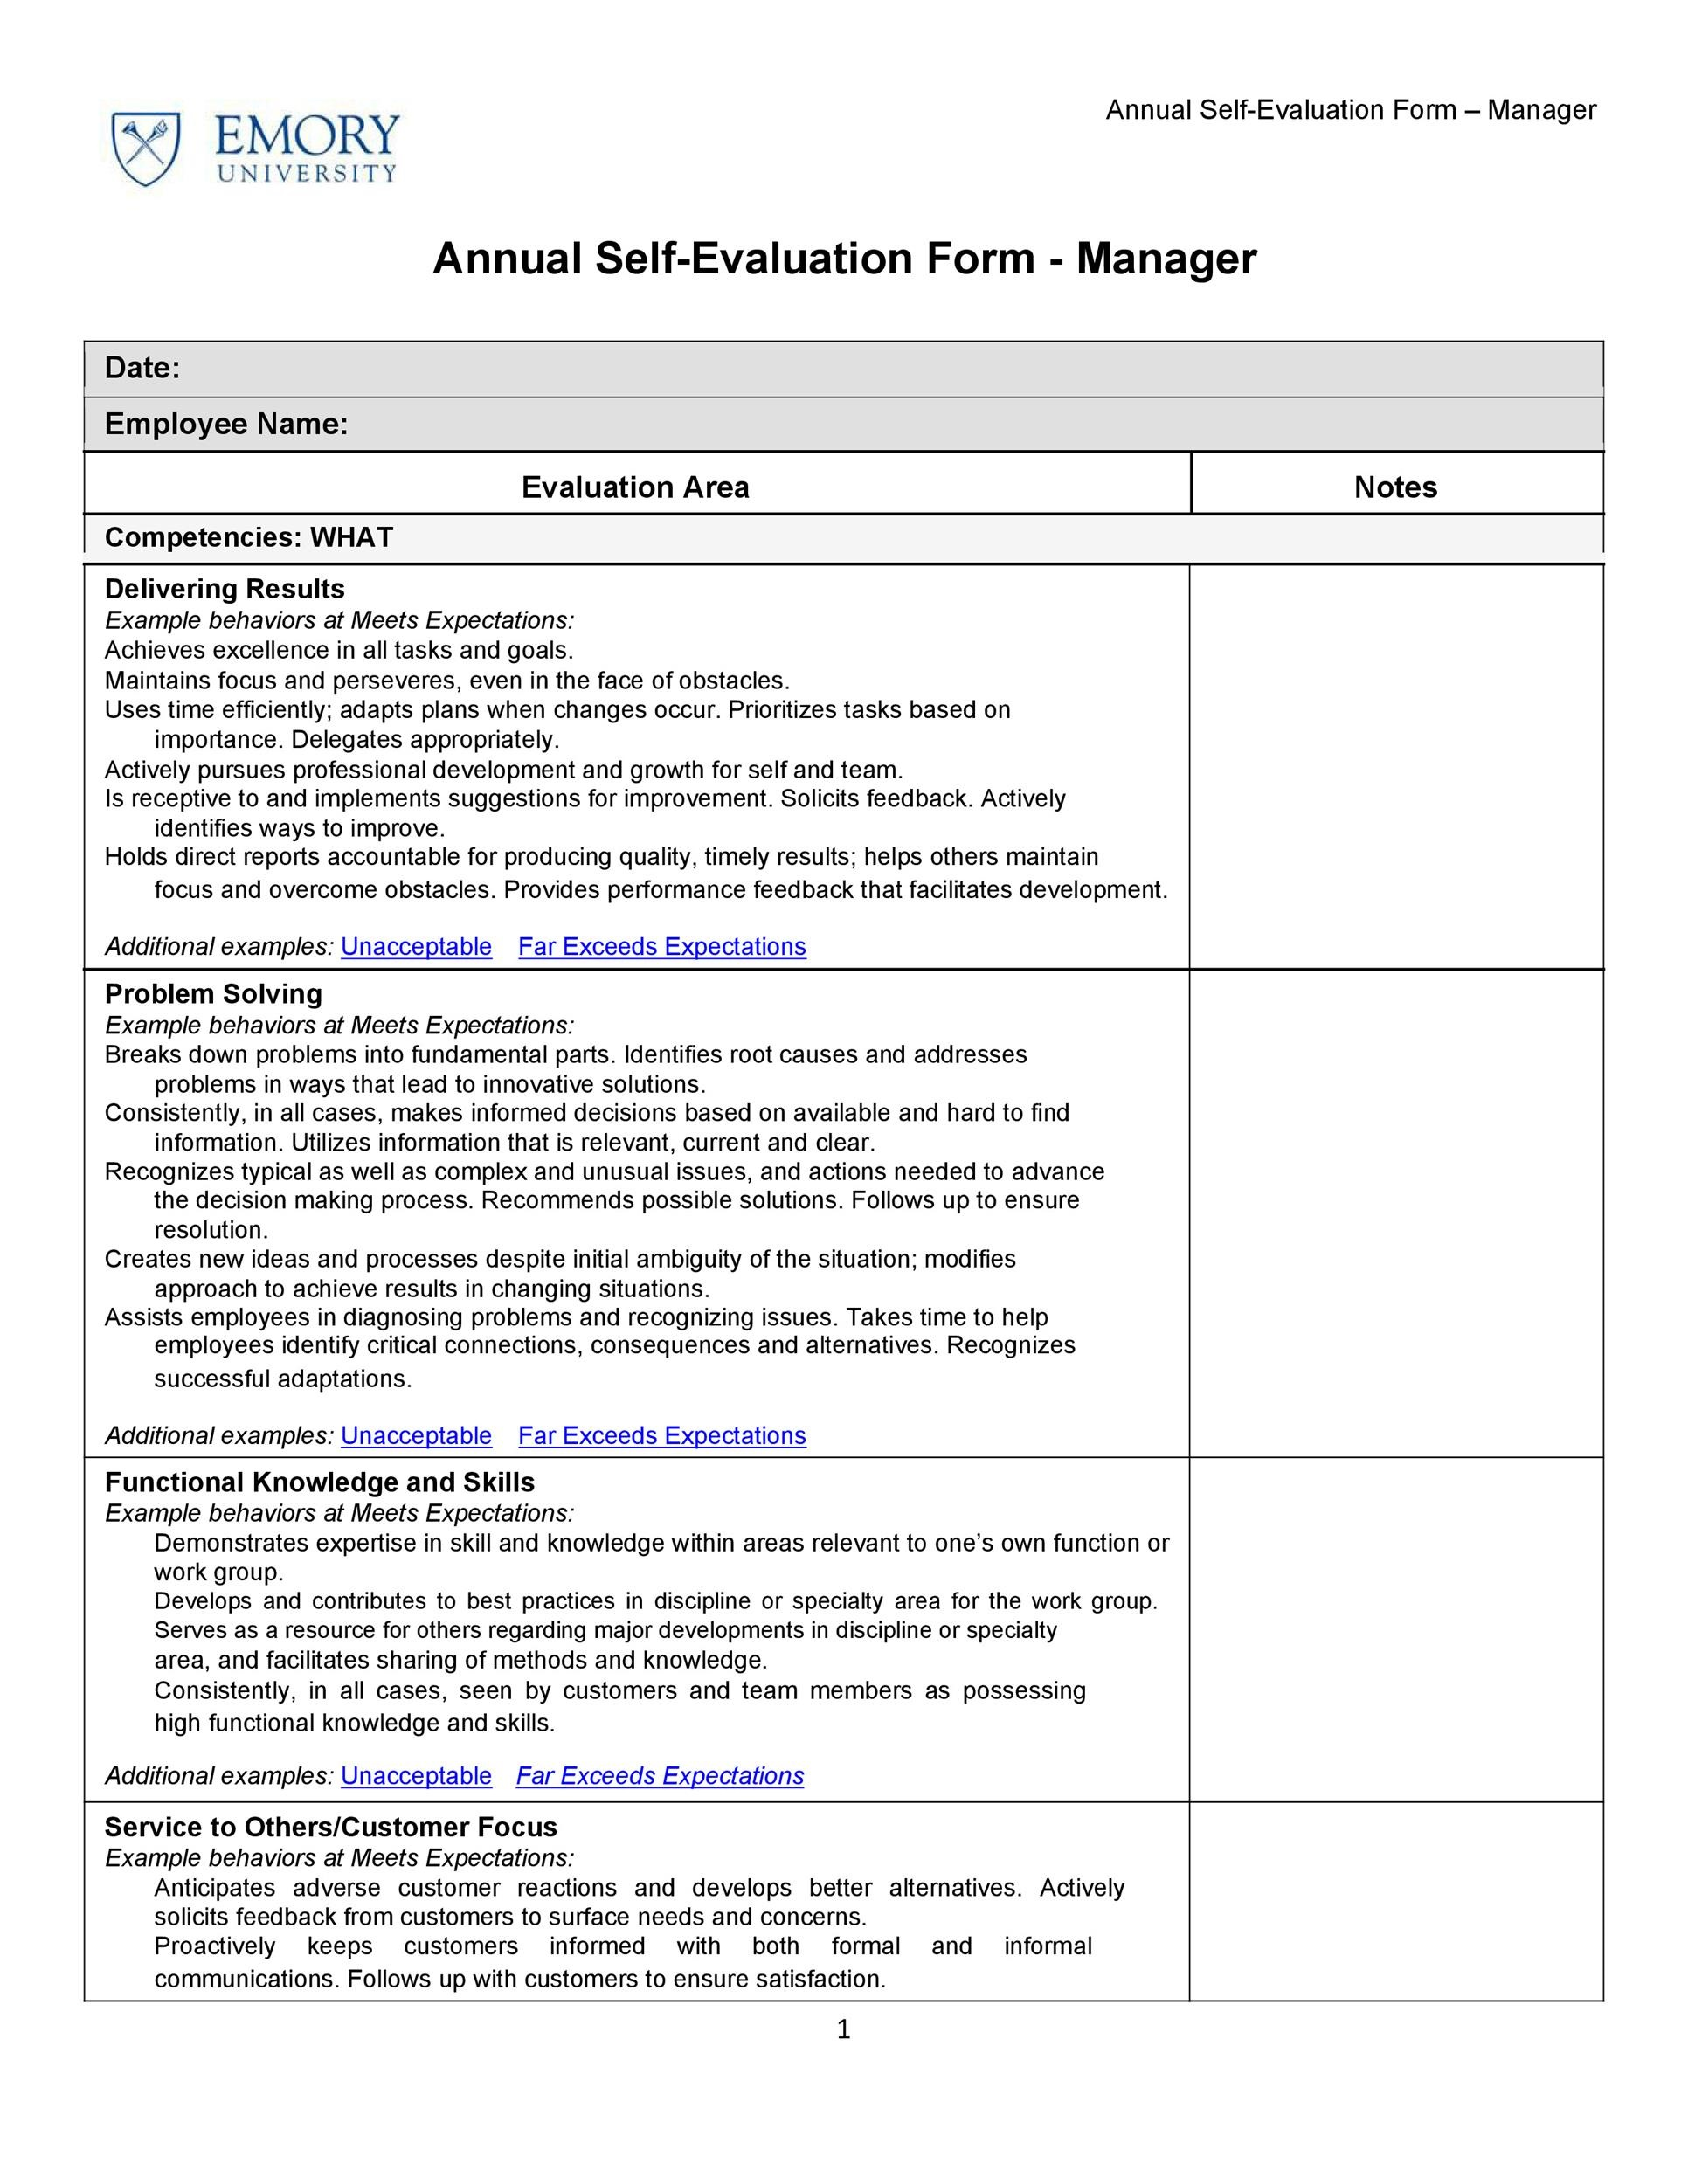 008 Unusual Employee Self Evaluation Form Template High Def  Free WordFull